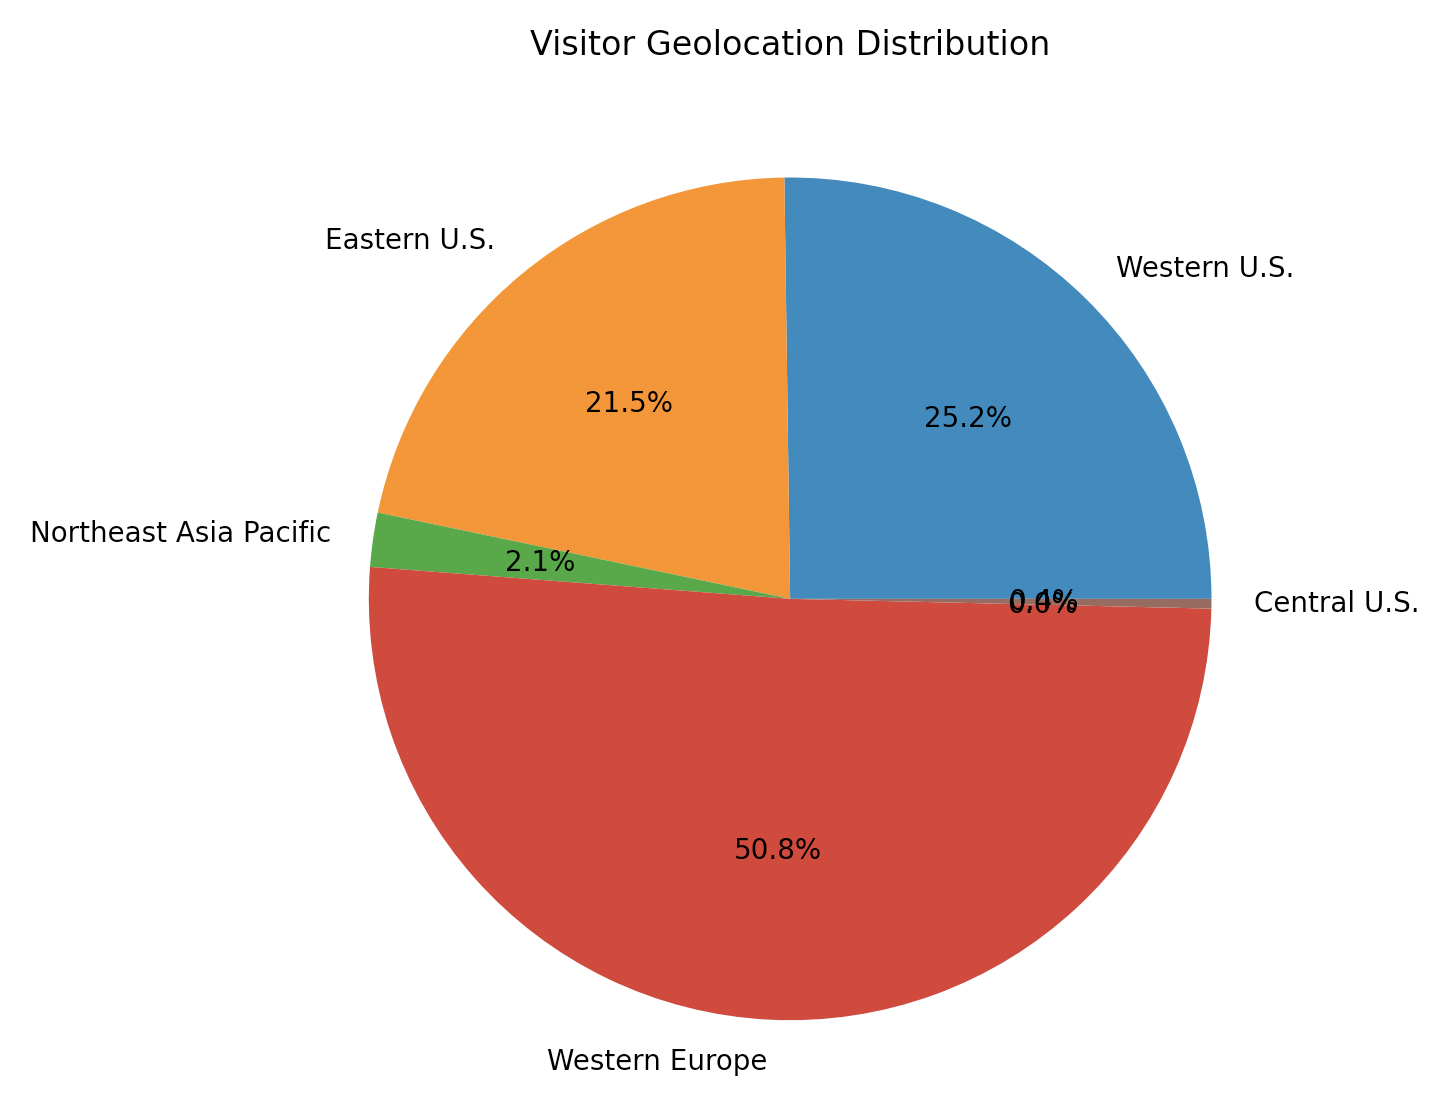 The pie chart shows how the visits to affected sites that we observed are distributed in terms of geolocation. While most visits came from Western Europe, a substantial portion of visits also originated from the Eastern and Western U.S.